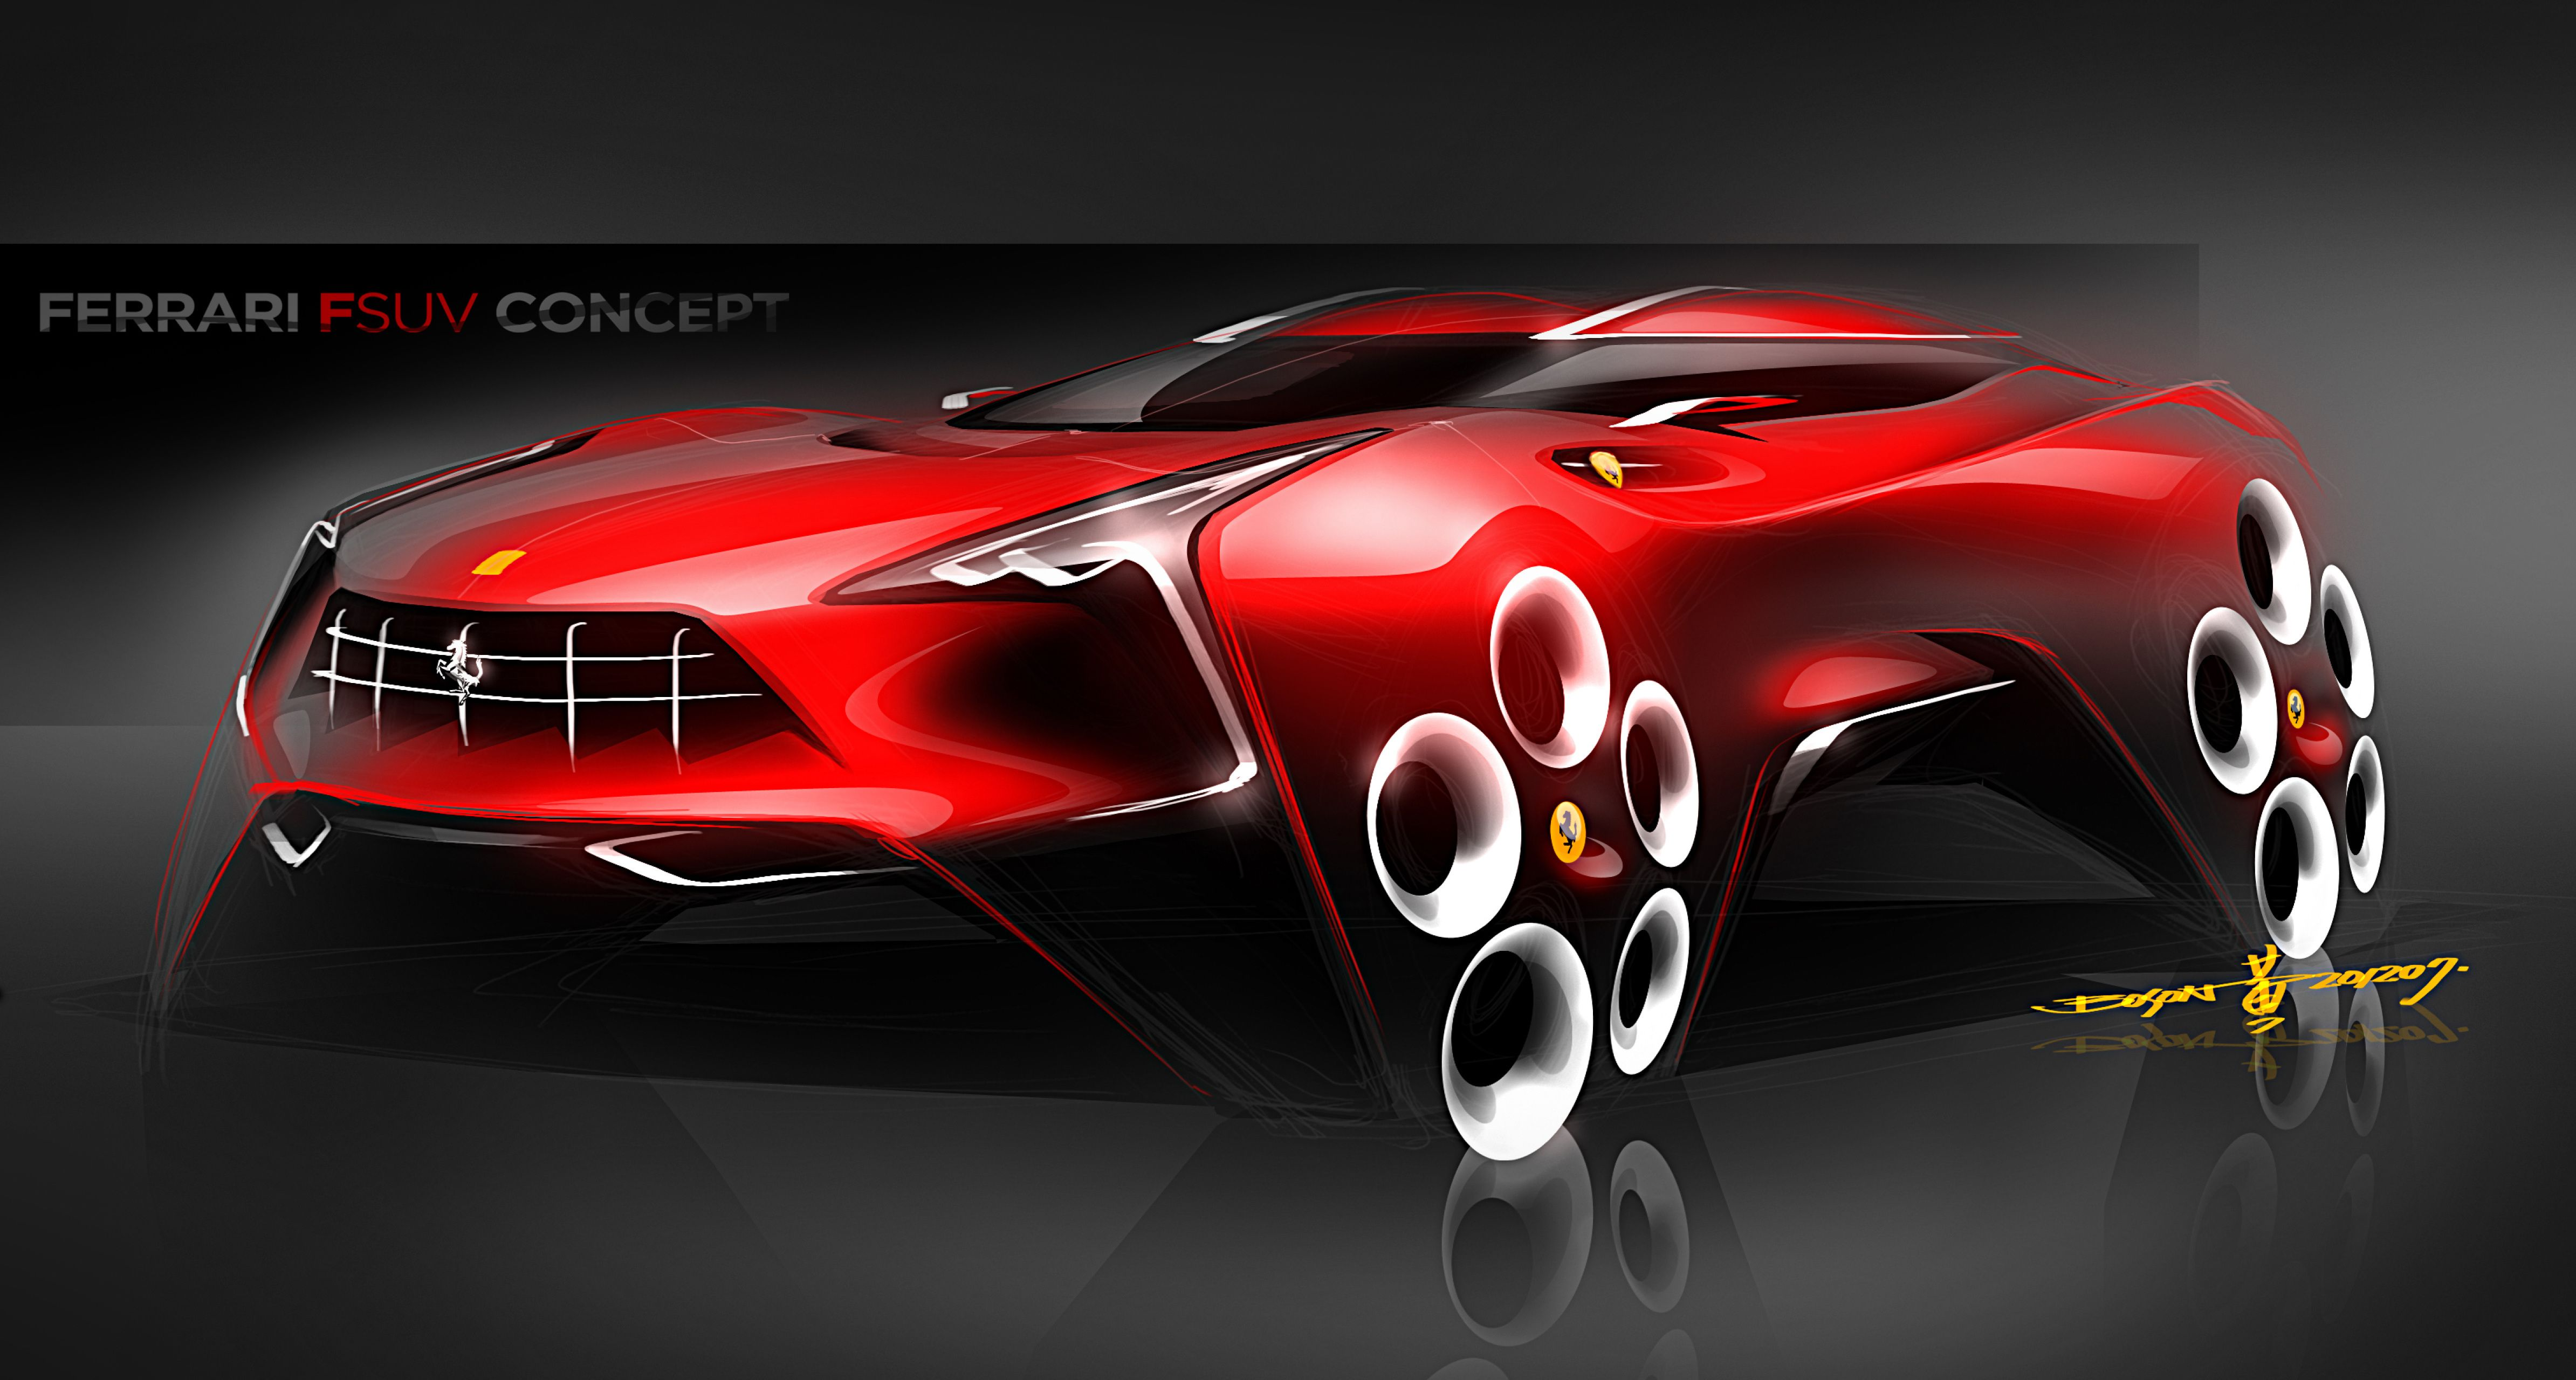 3000 year future cars Future car, Concept car sketch